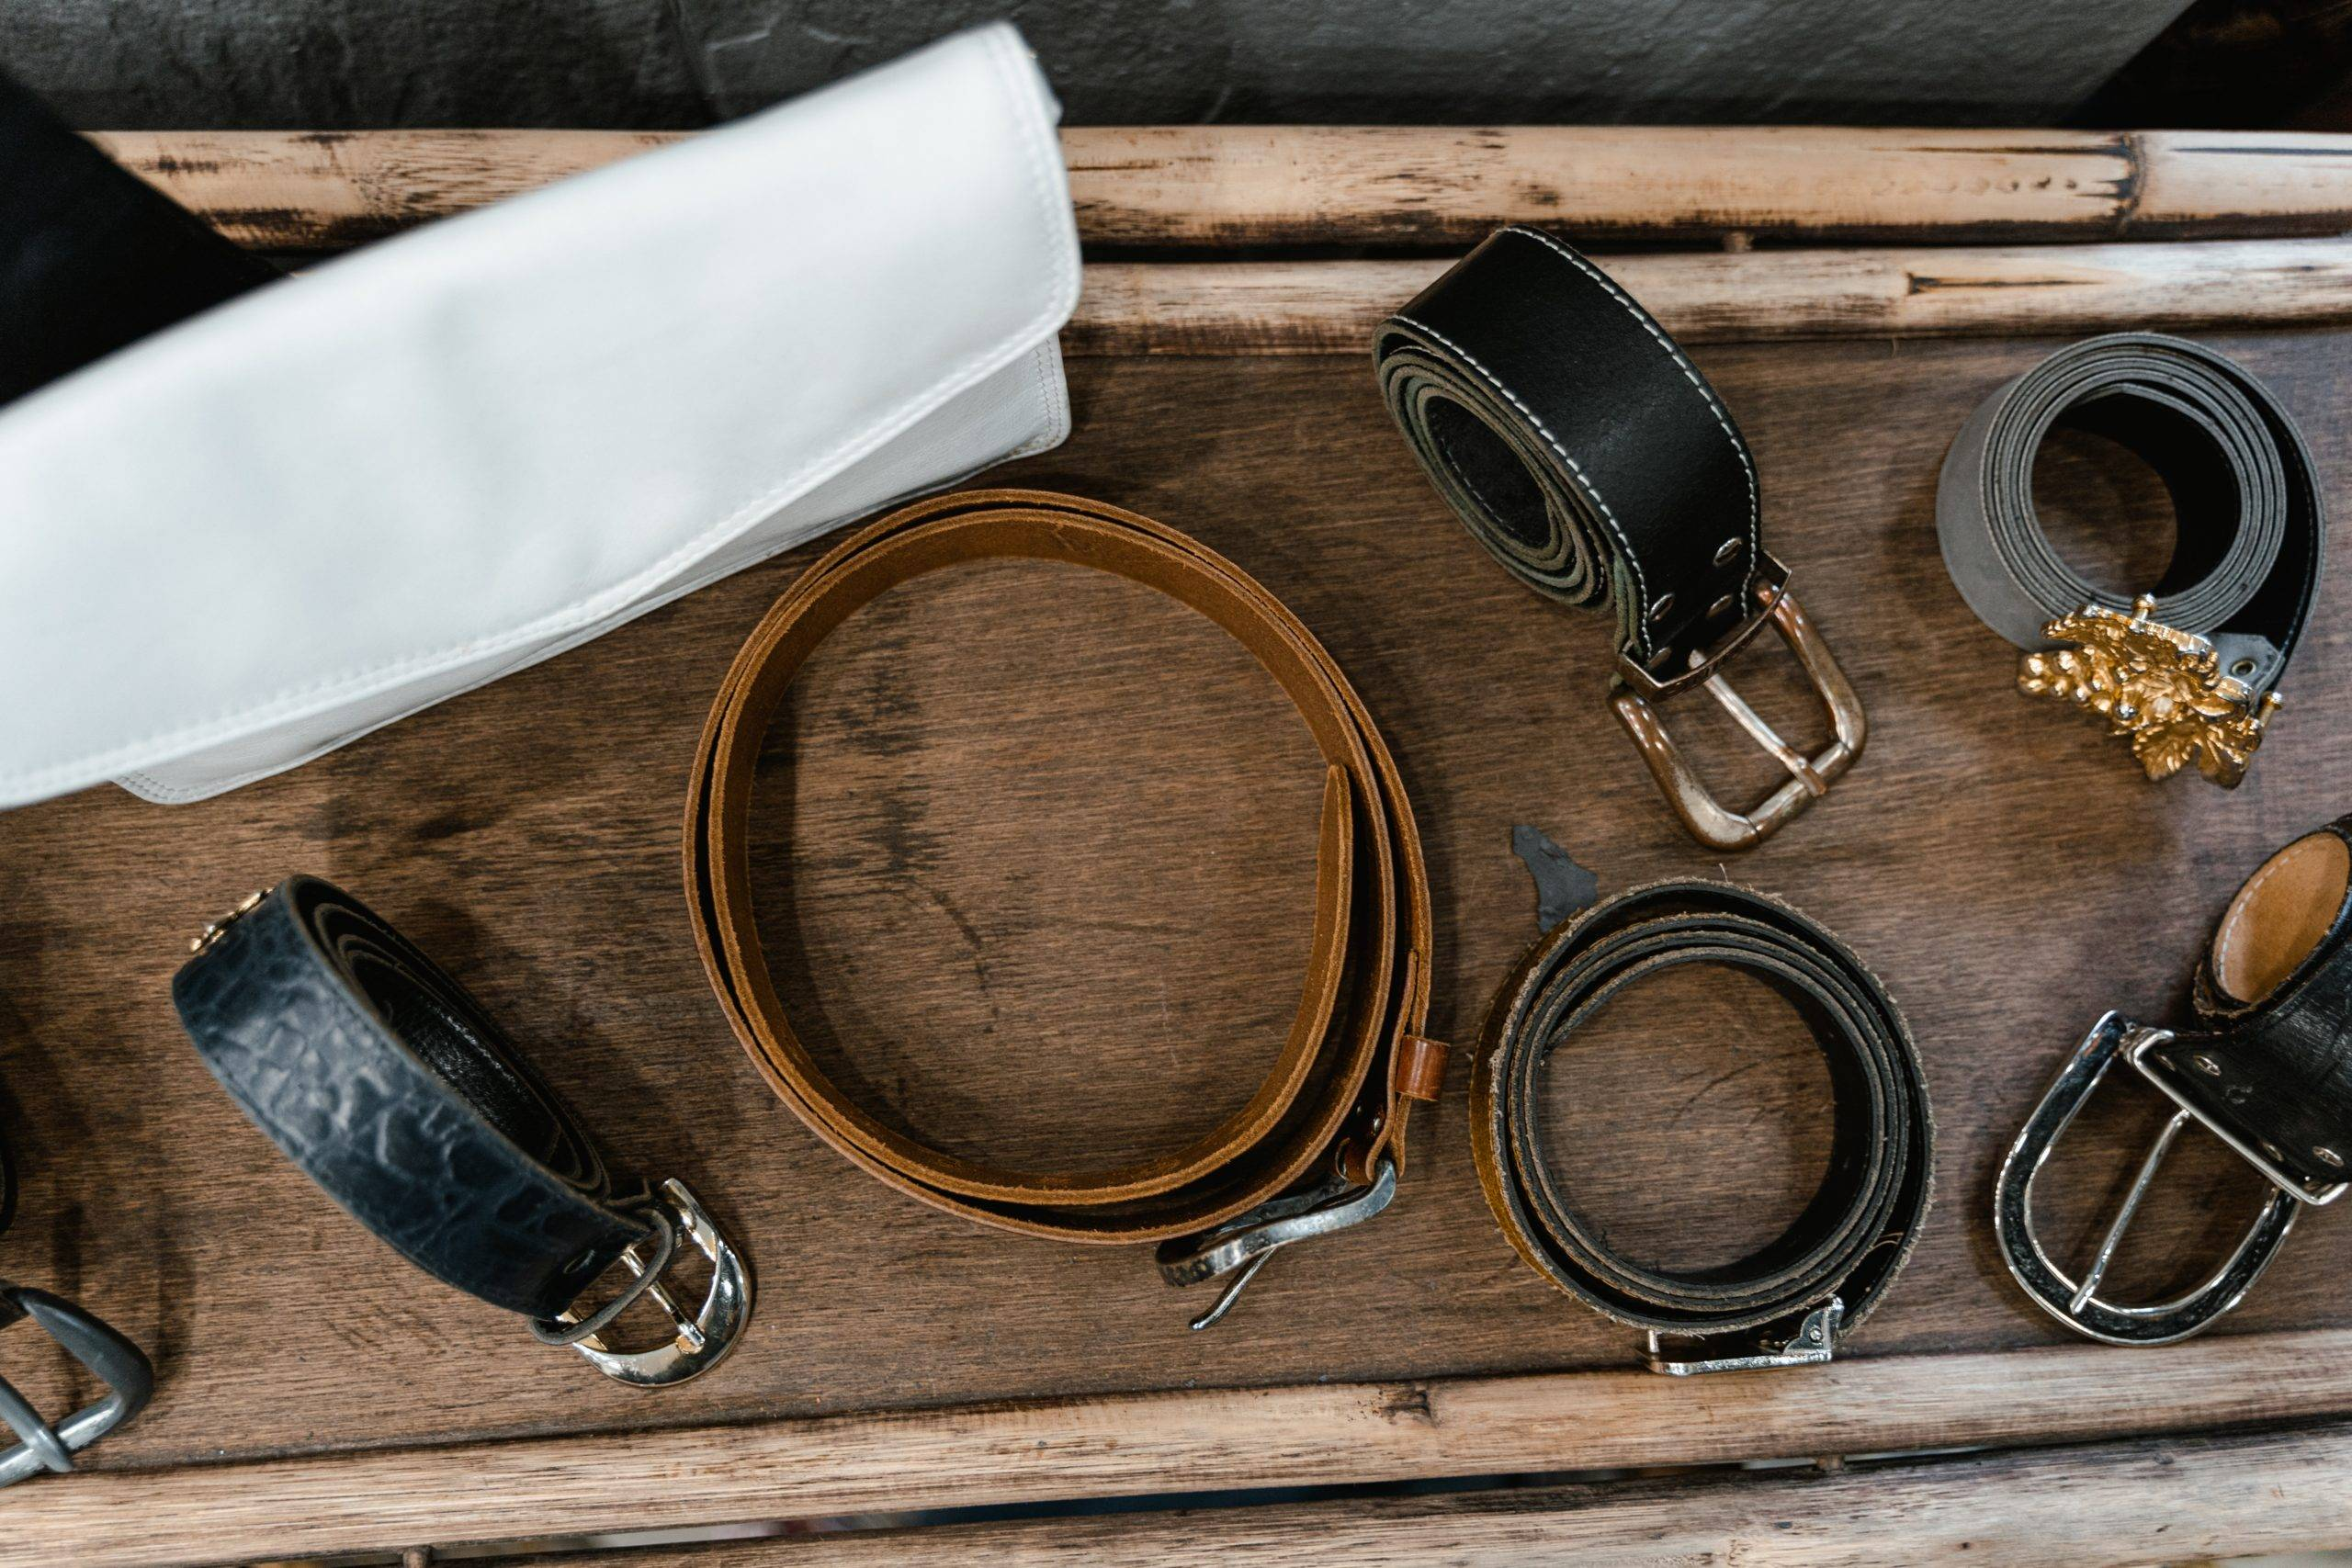 Collection of rolled up belts